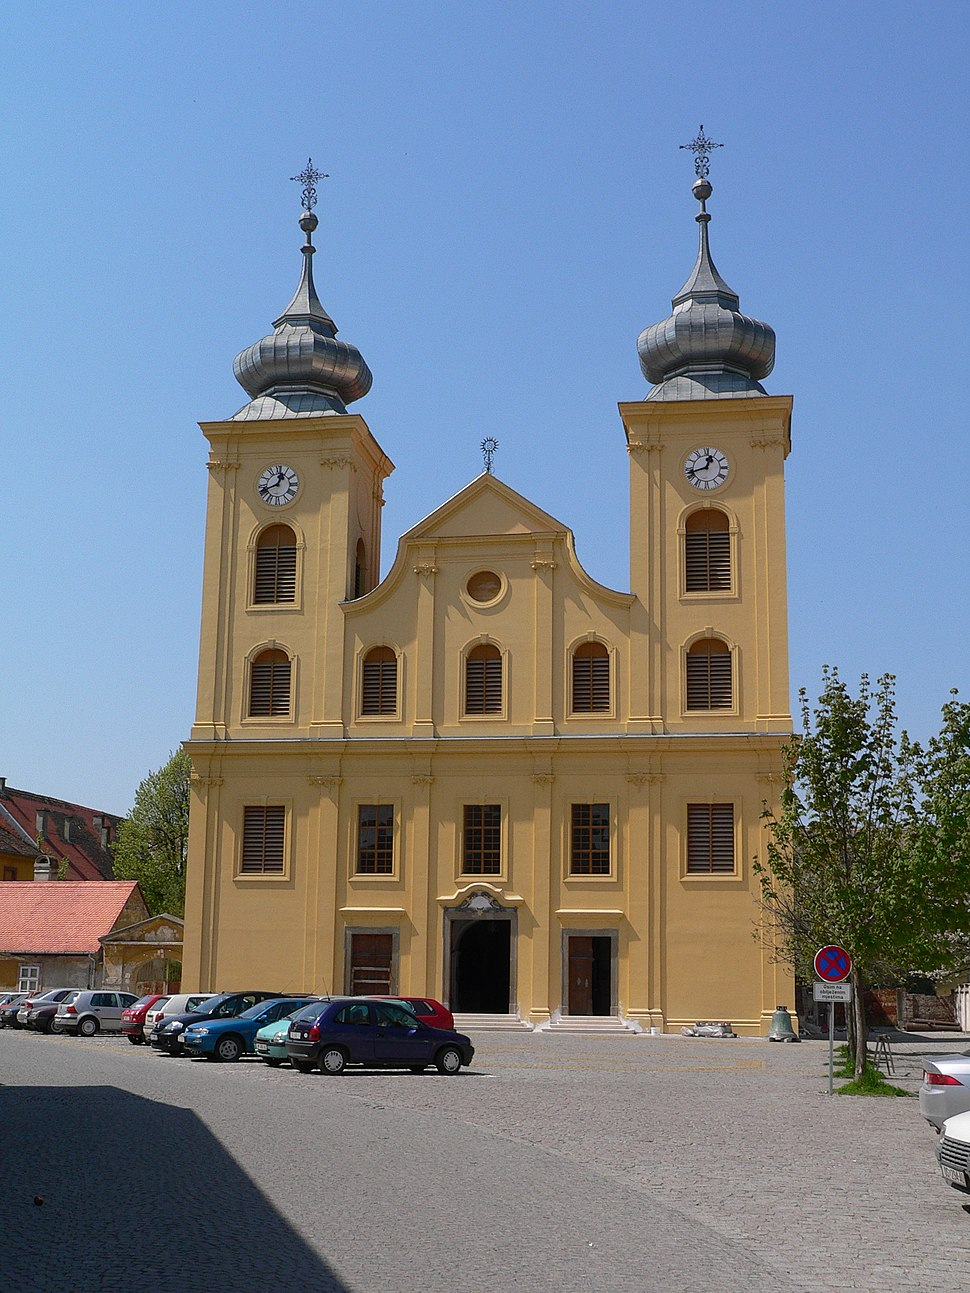 St. Michael's Church, Osijek